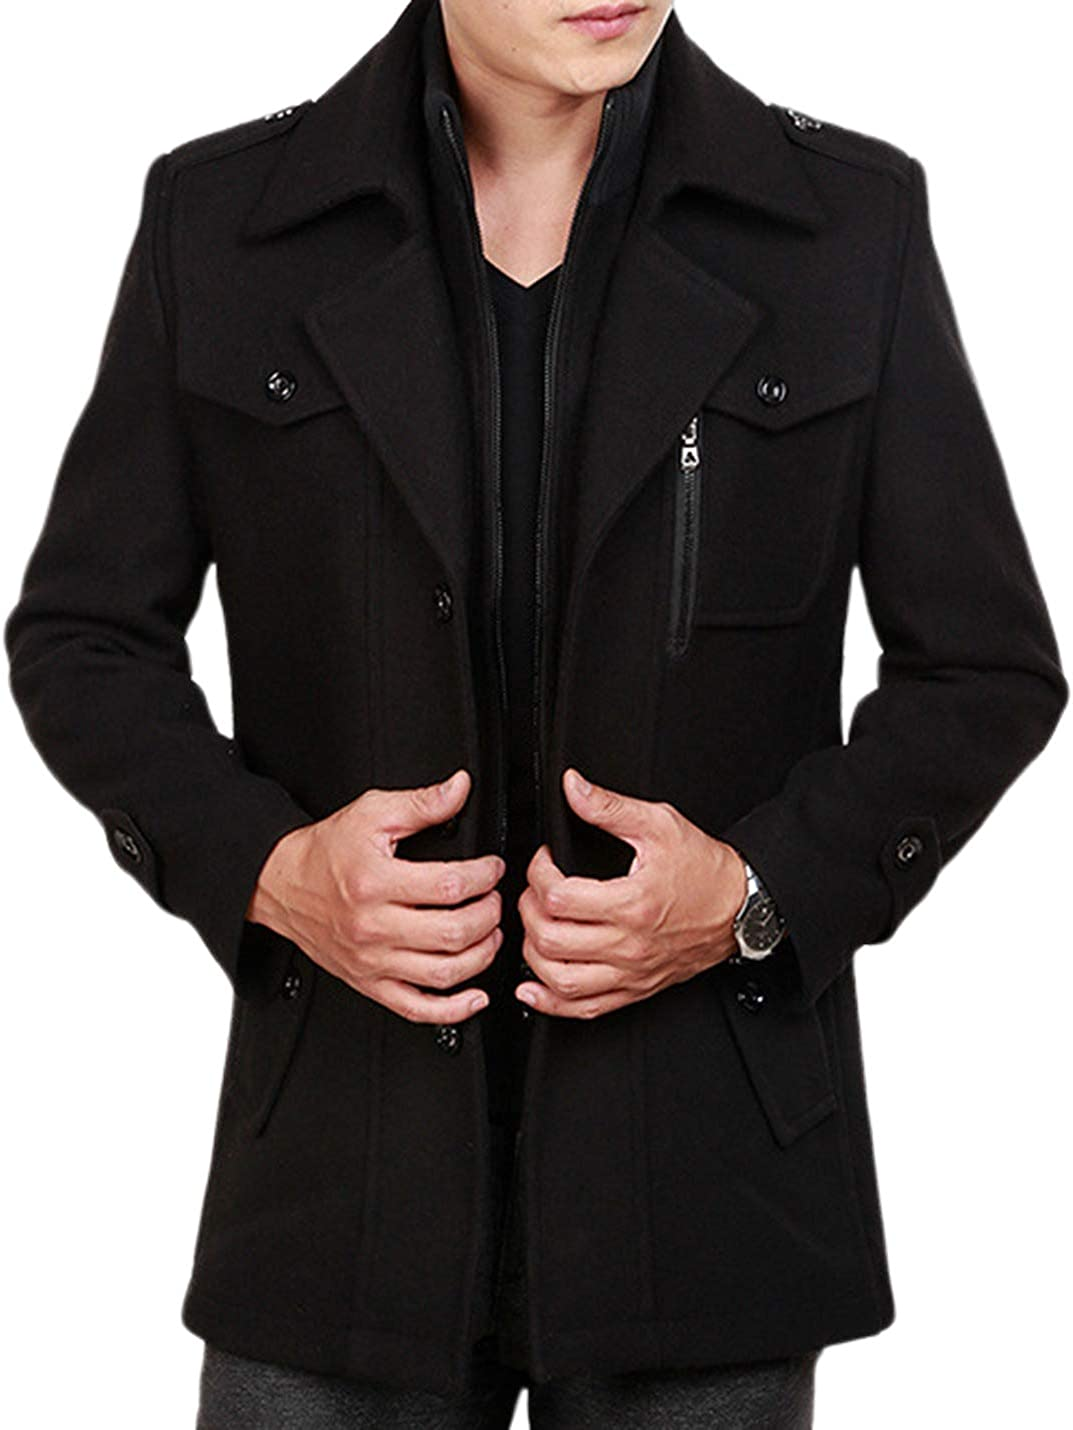 Uaneo Mens Casual Thicken Layered Lapel Collar Mid Long Wool Blend Coat Outerwear(Black-S)